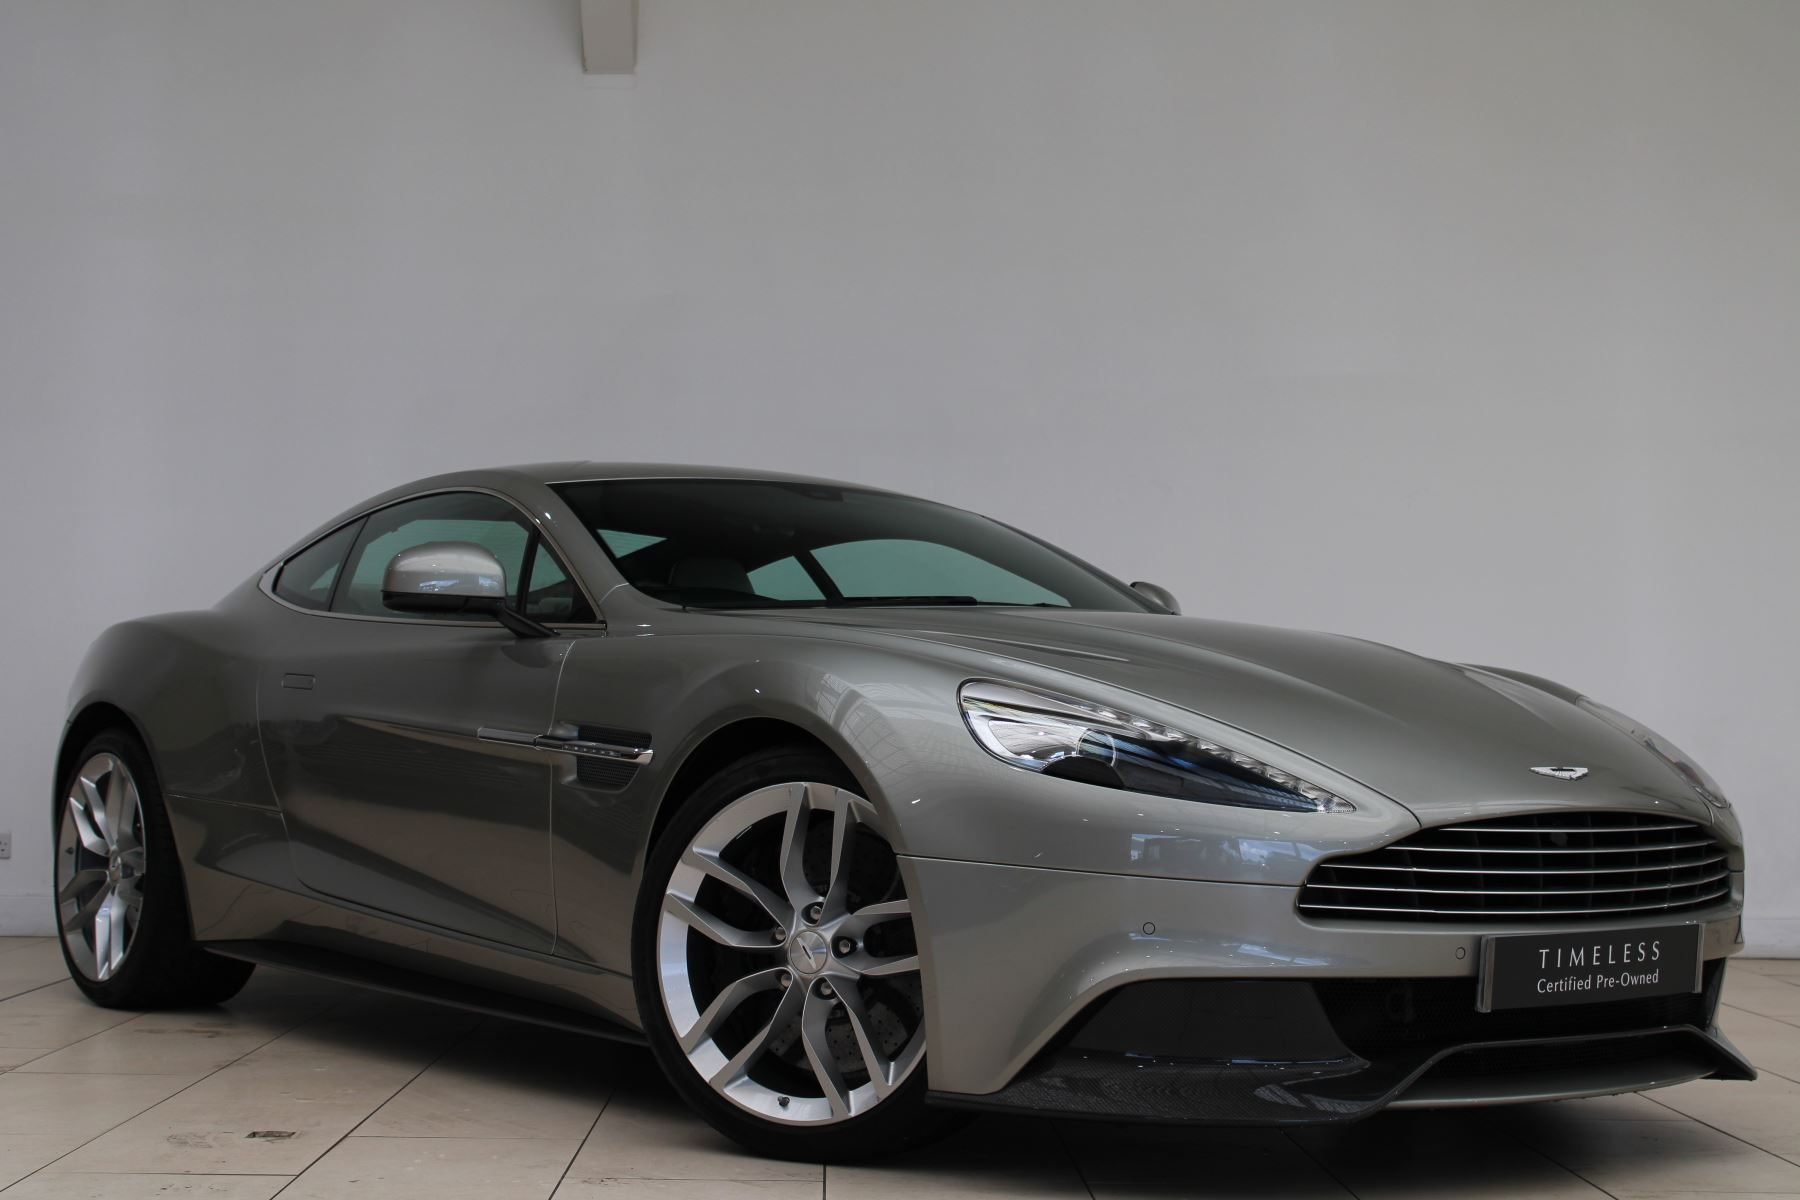 Aston Martin Vanquish V12 [568] Touchtronic3 One77 Silver Birch Full Leather Steering Wheel 5.9 Automatic 2 door Coupe